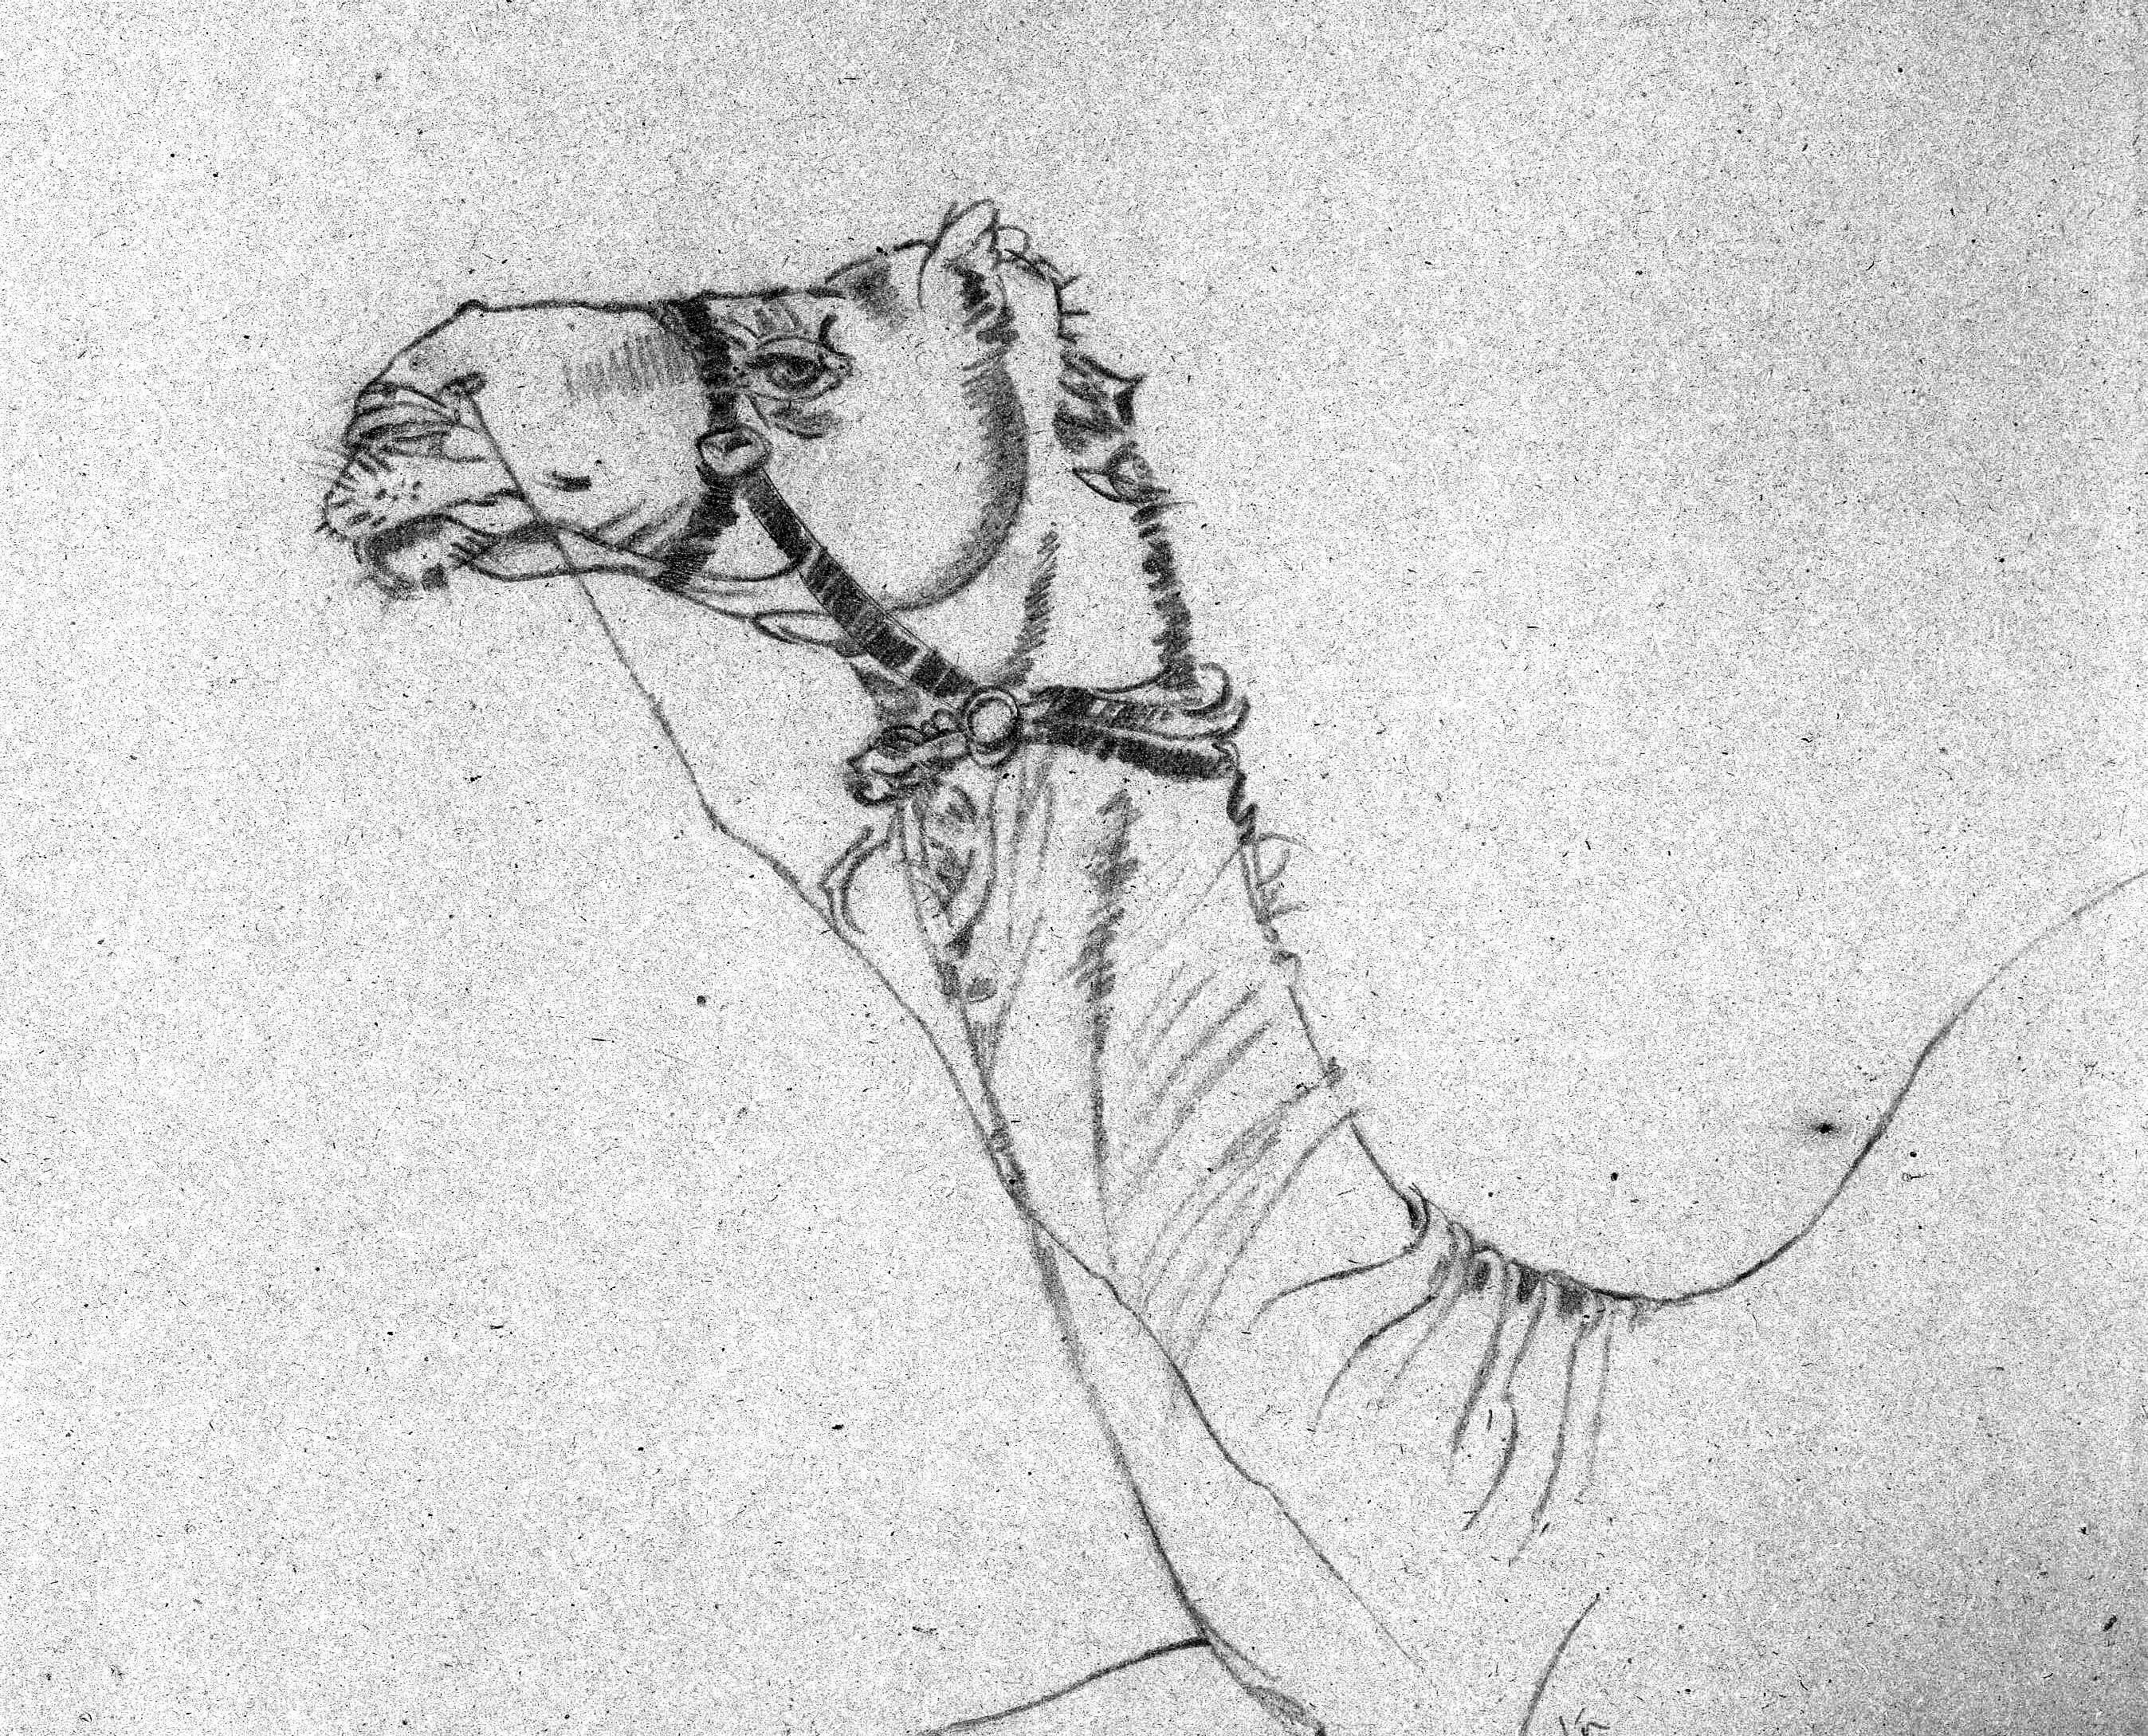 pencil sketch of camel on location of jaipur rajasthan india